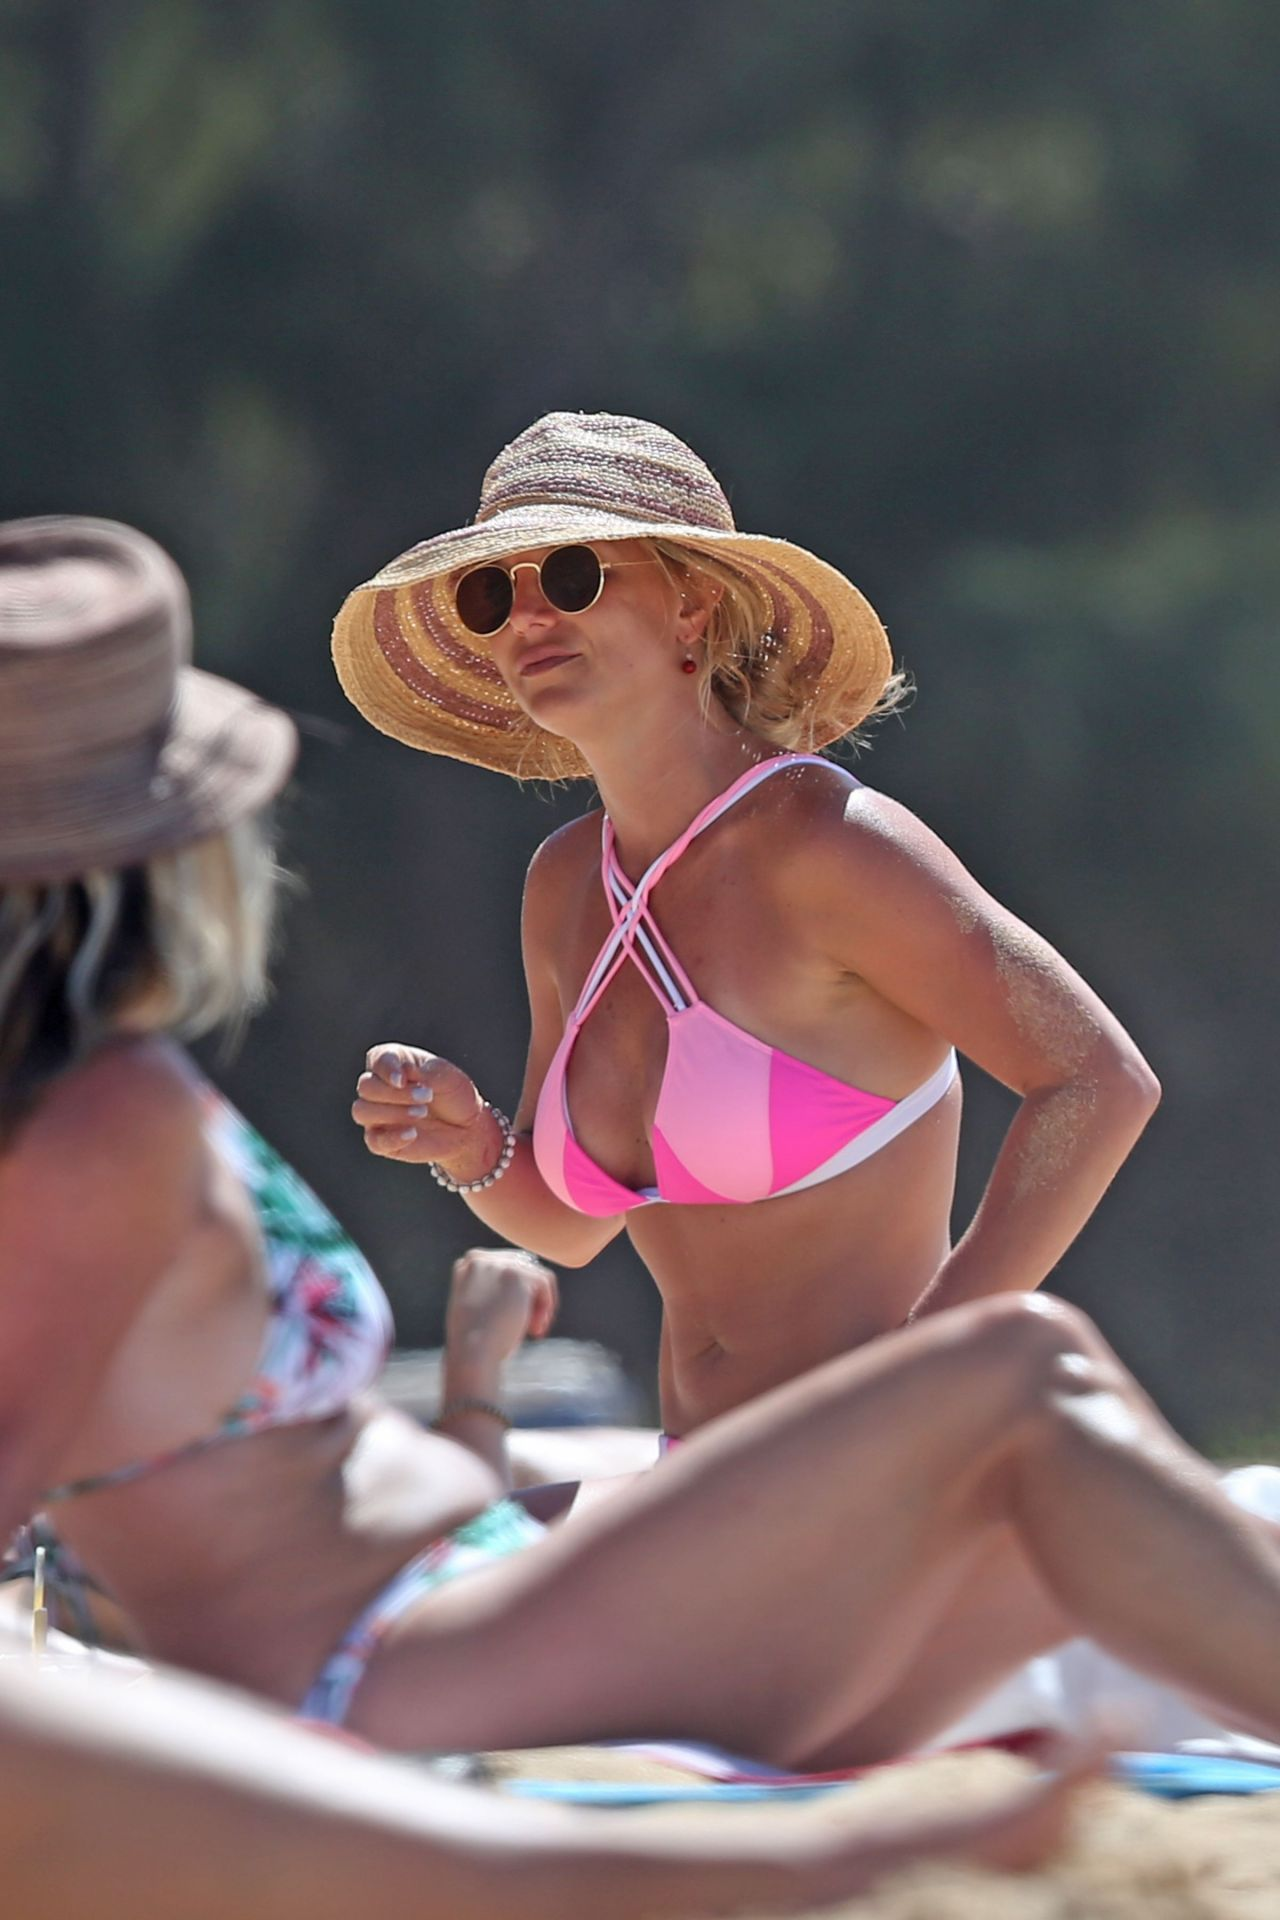 Britney Spears Bikini Pictures | POPSUGAR Celebrity